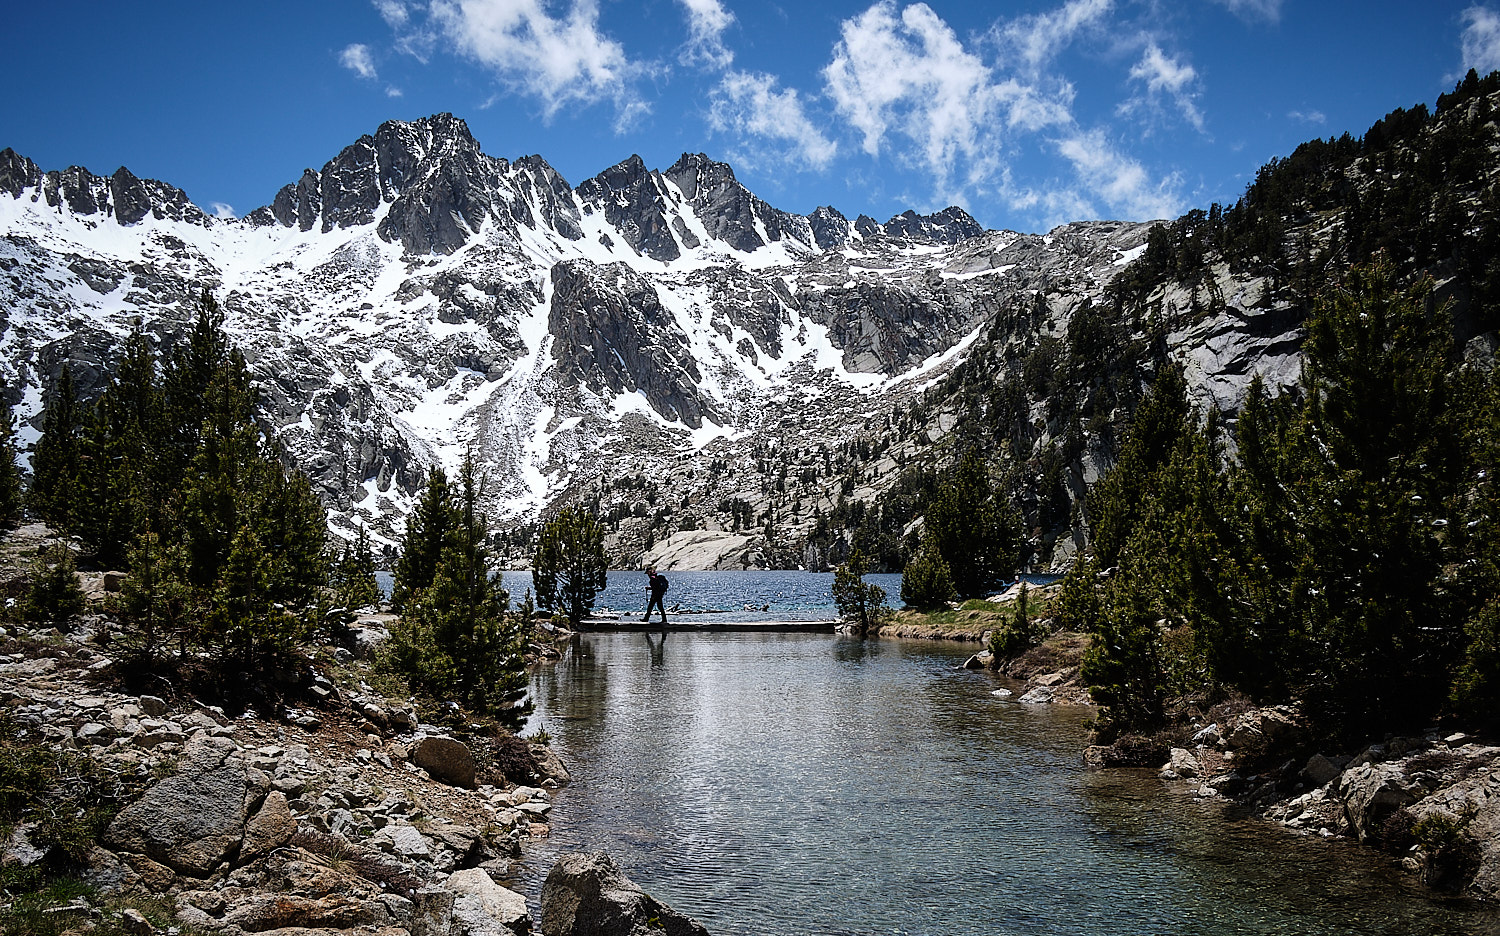 Six-days hike around the Parc Nacional d'Aiguetortes i Estany de Sant Maurici in the central Pyrenees. View of deep blue lakes and snowed mountains.